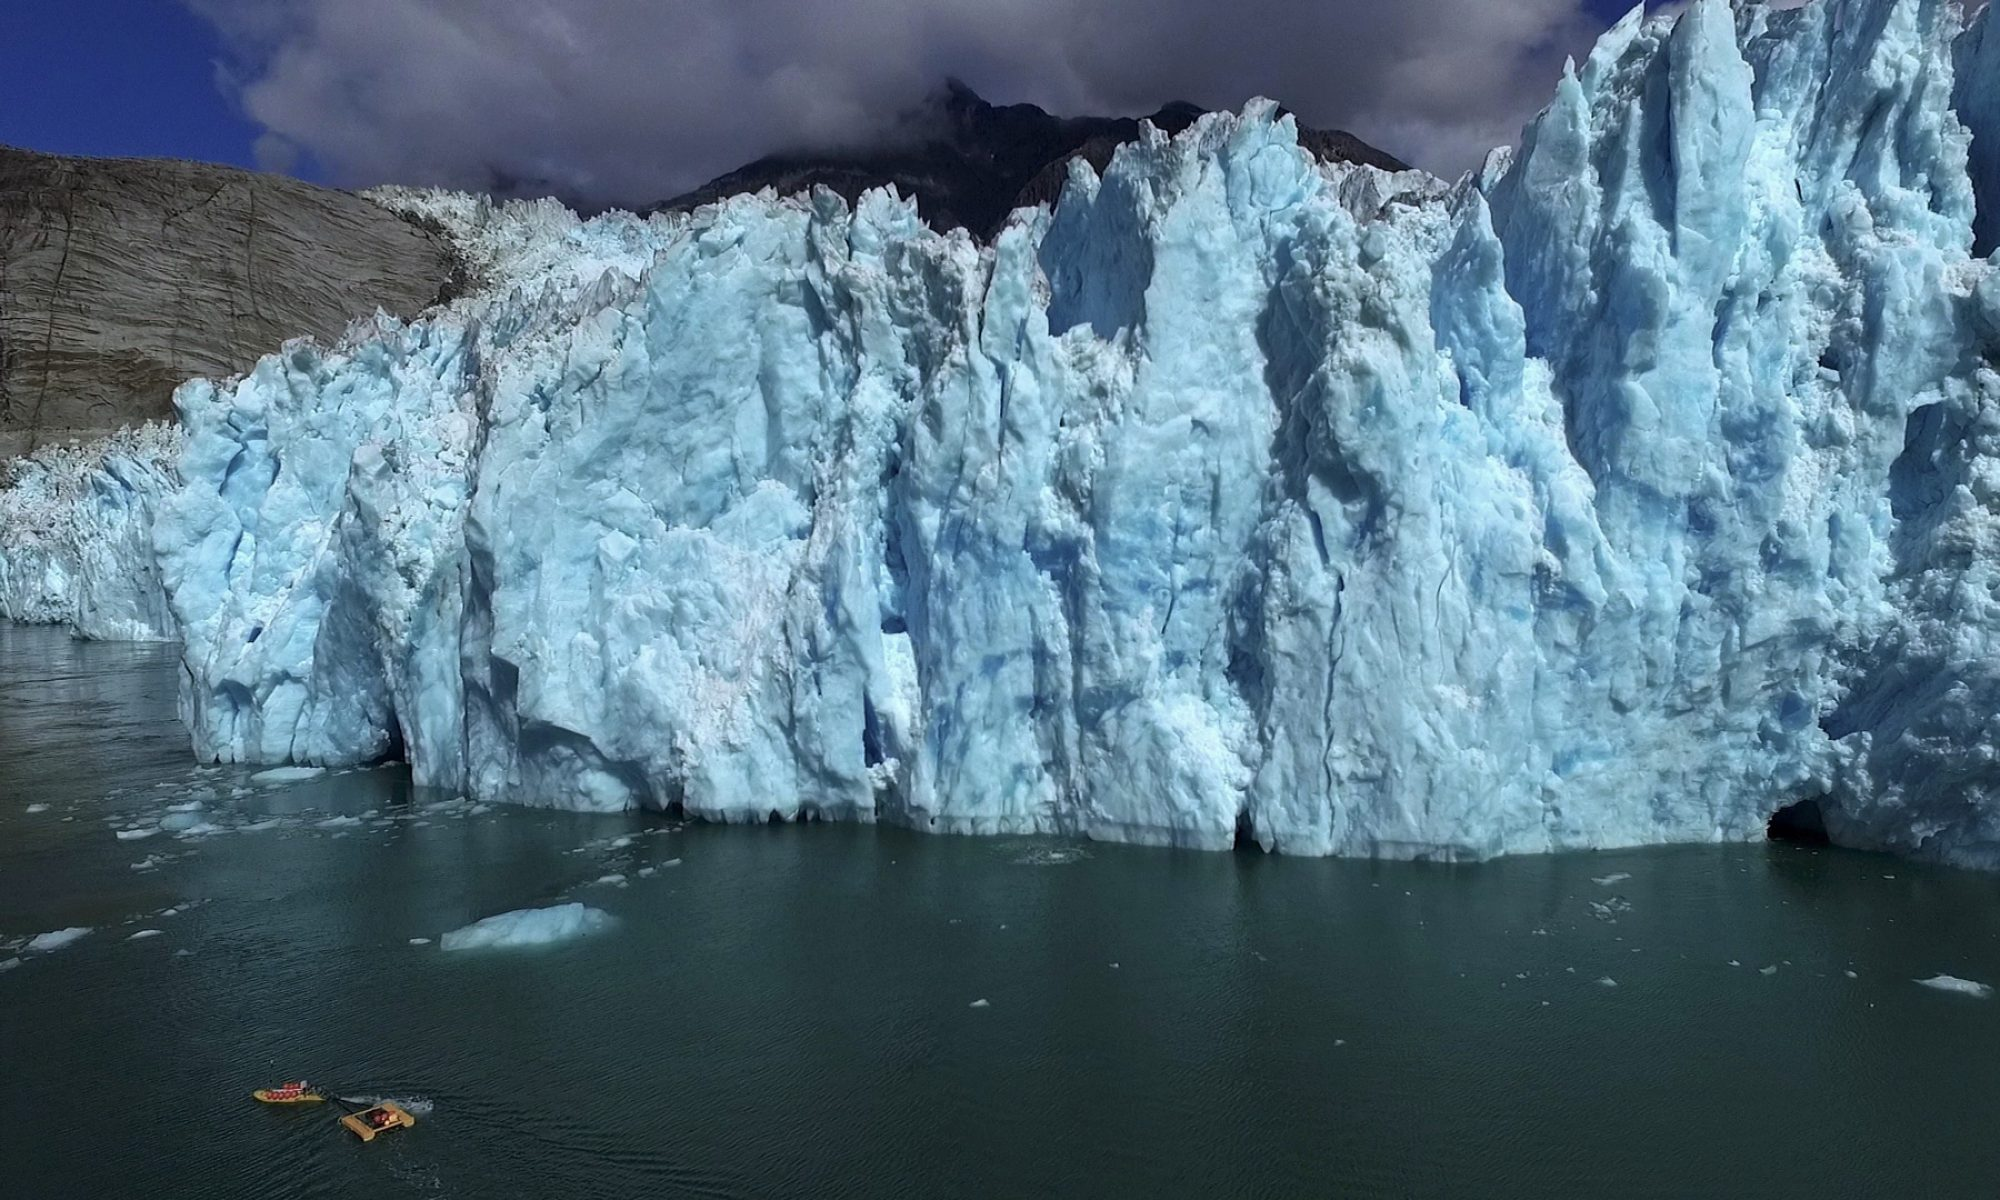 Glaciers, Oceans, and the Sounds of Ice